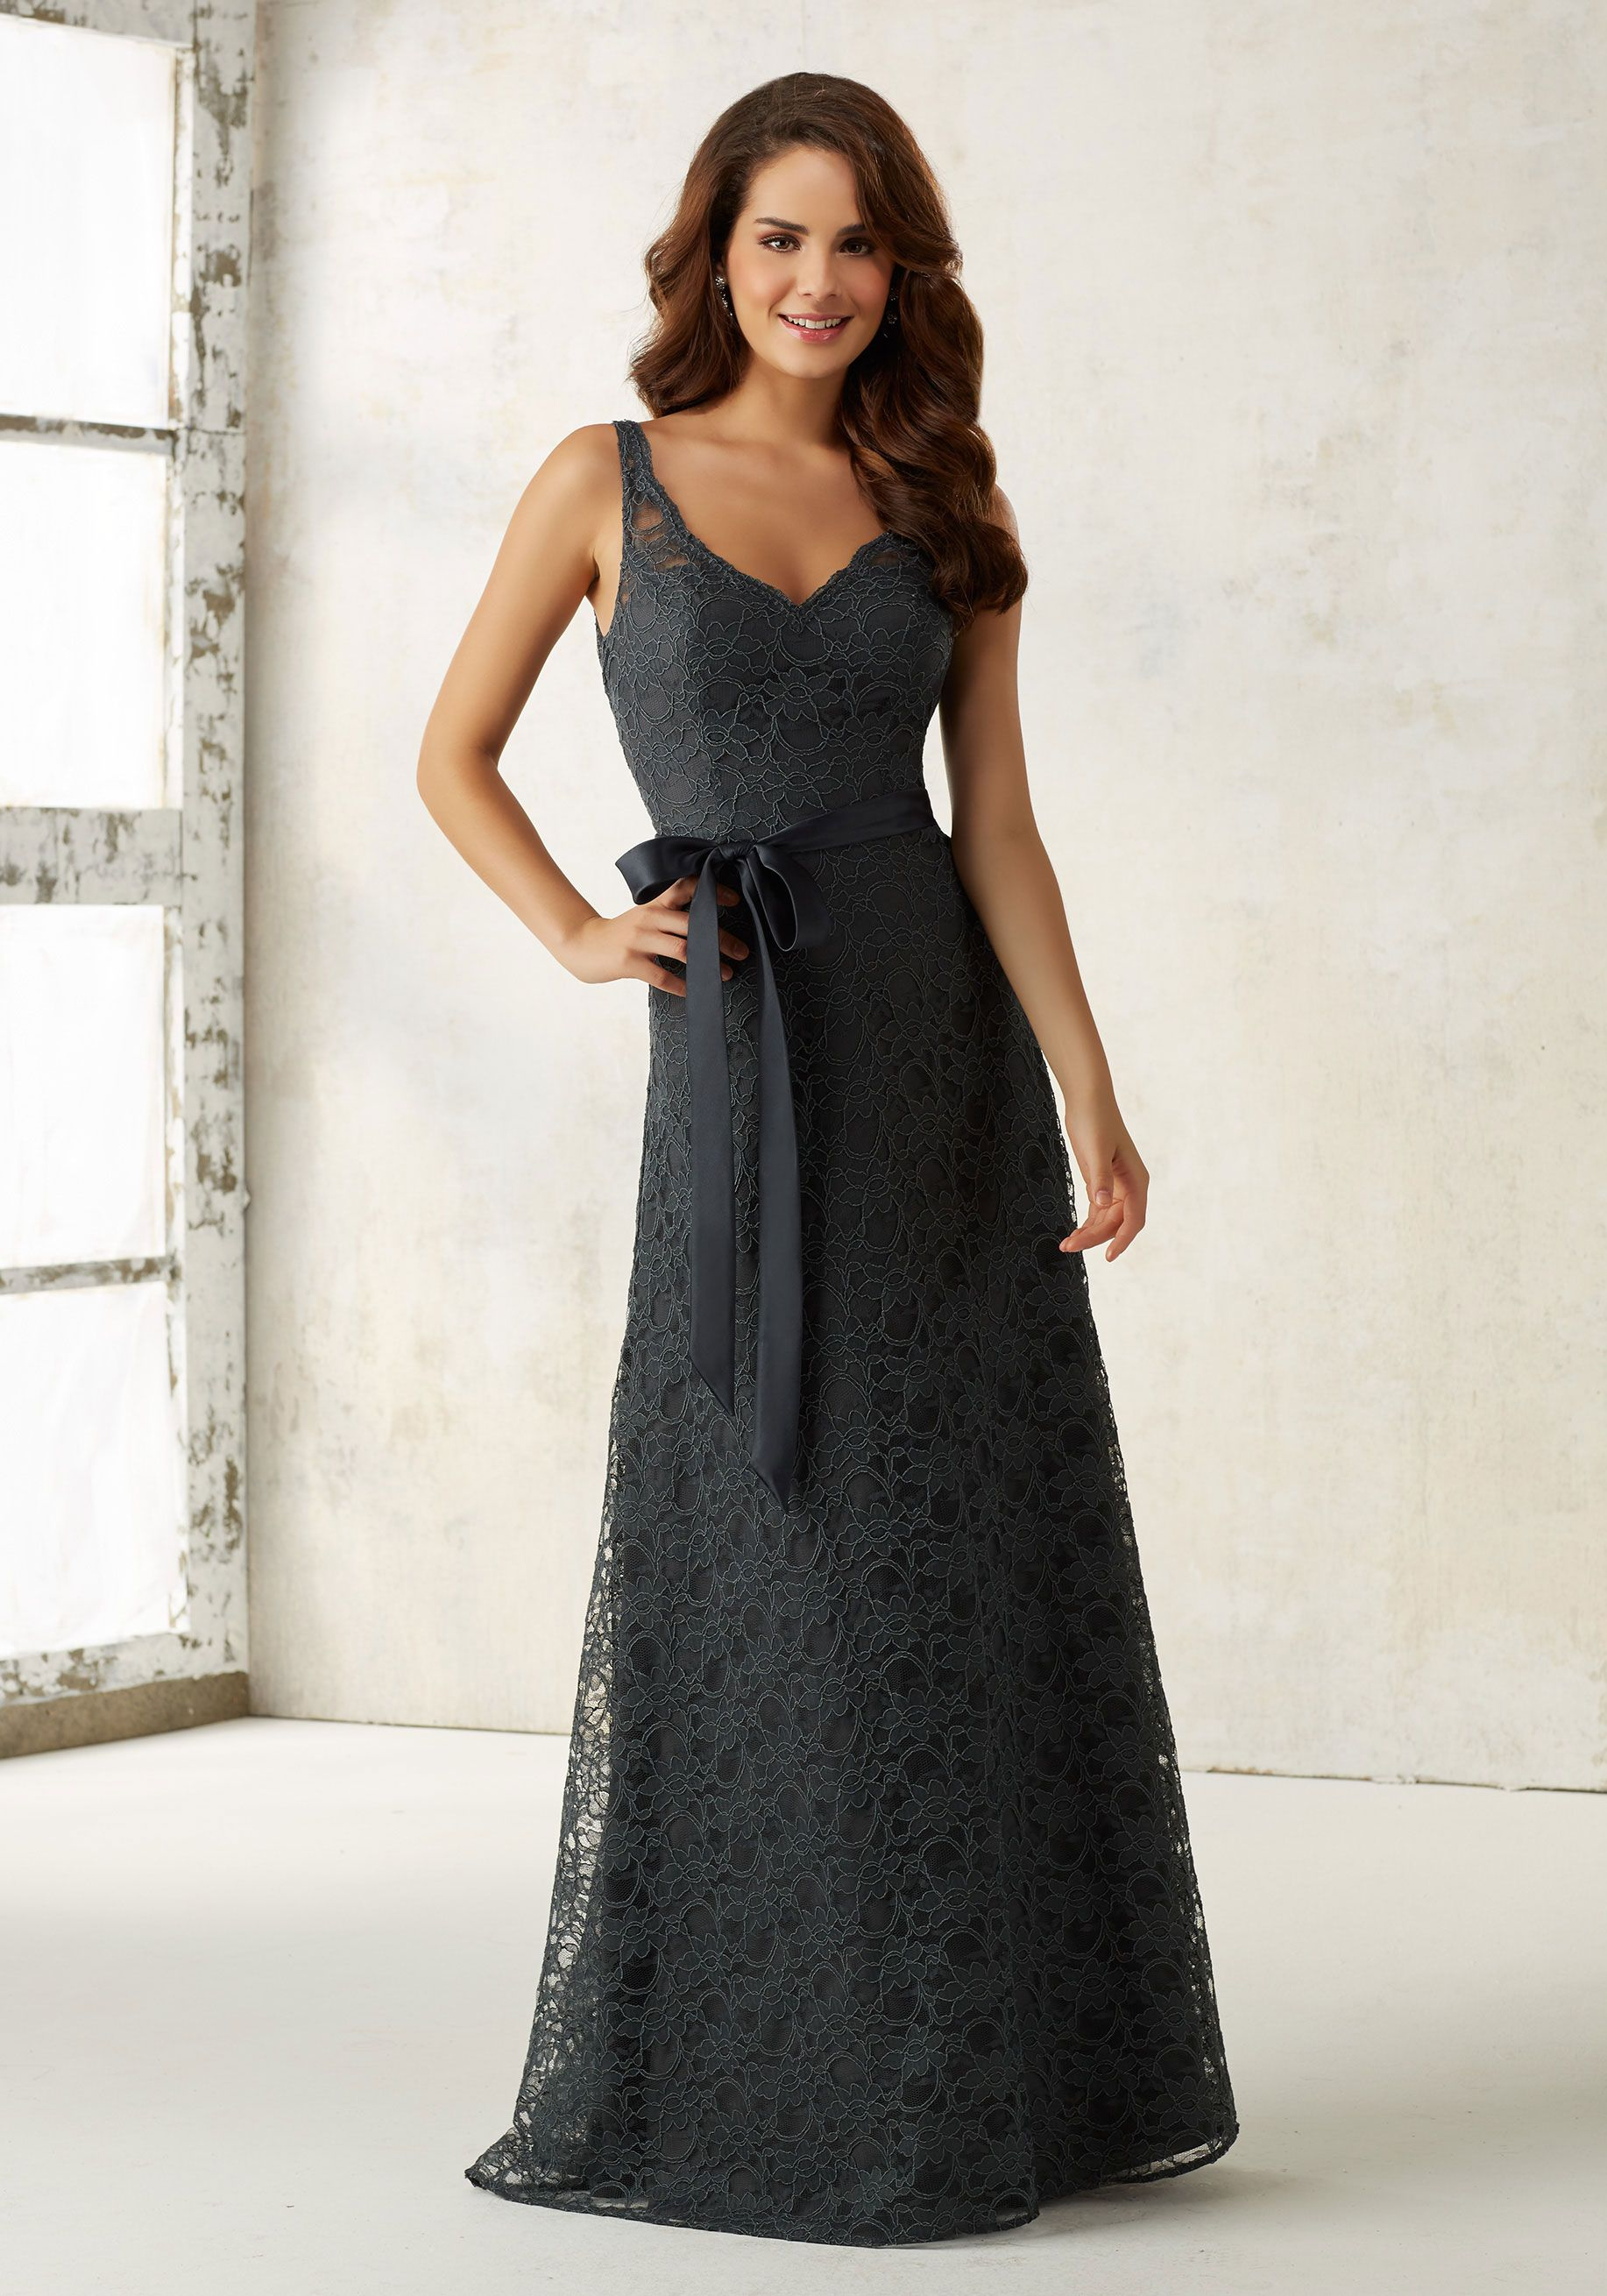 Lace Bridesmaids Dress with Matching Tie Sash   Morilee